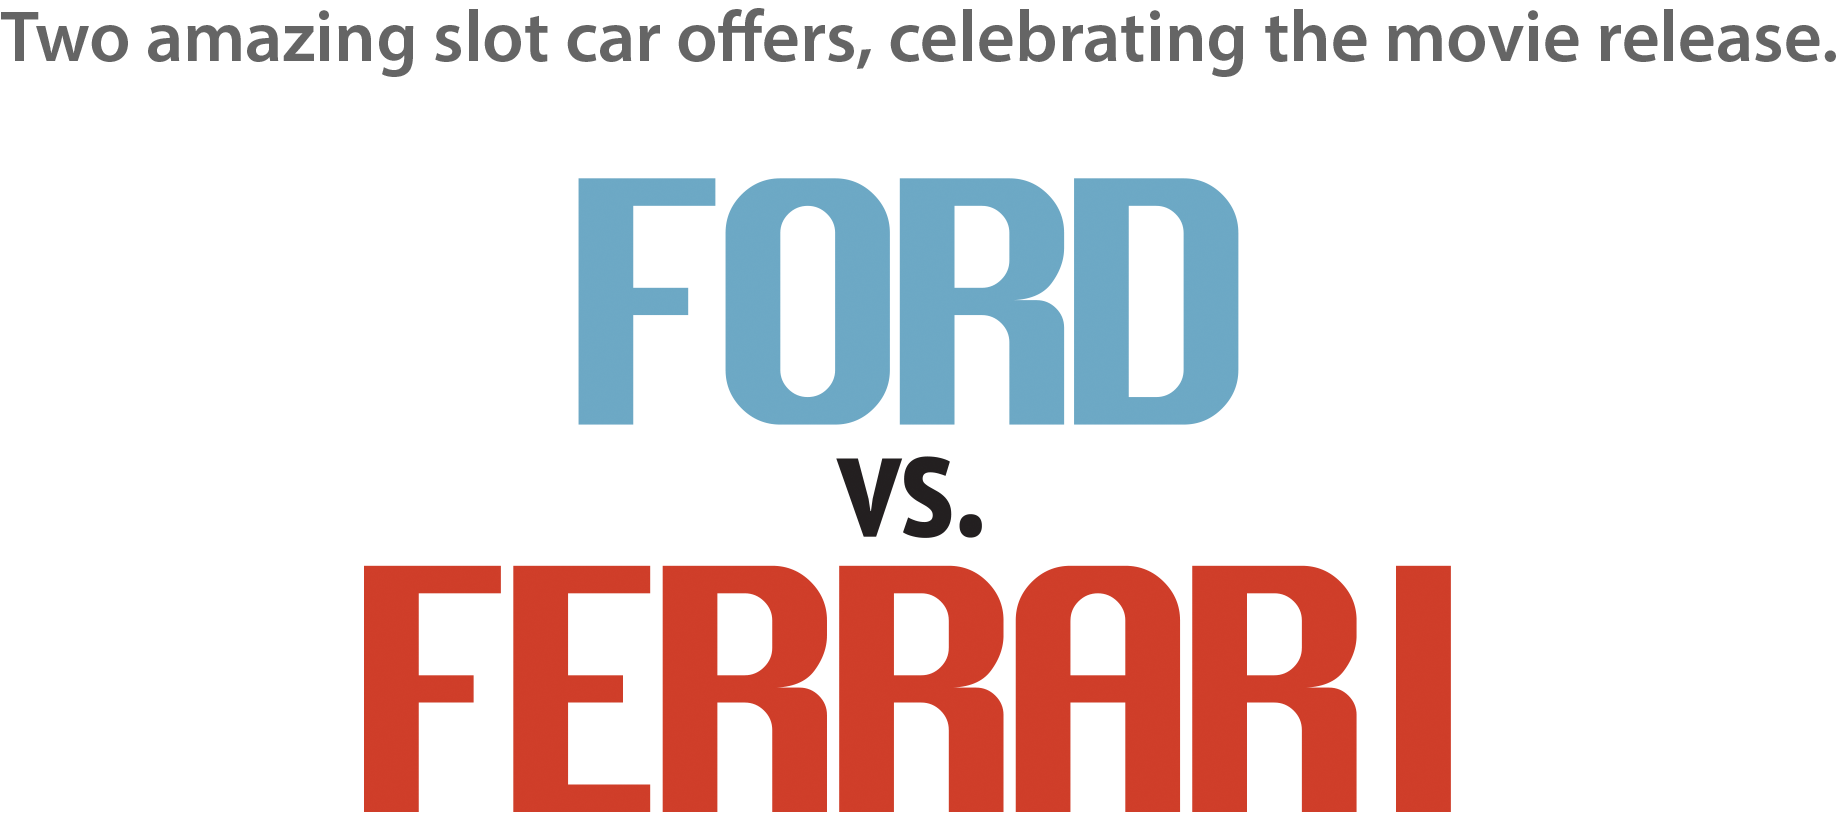 Ford_vs_Ferrari